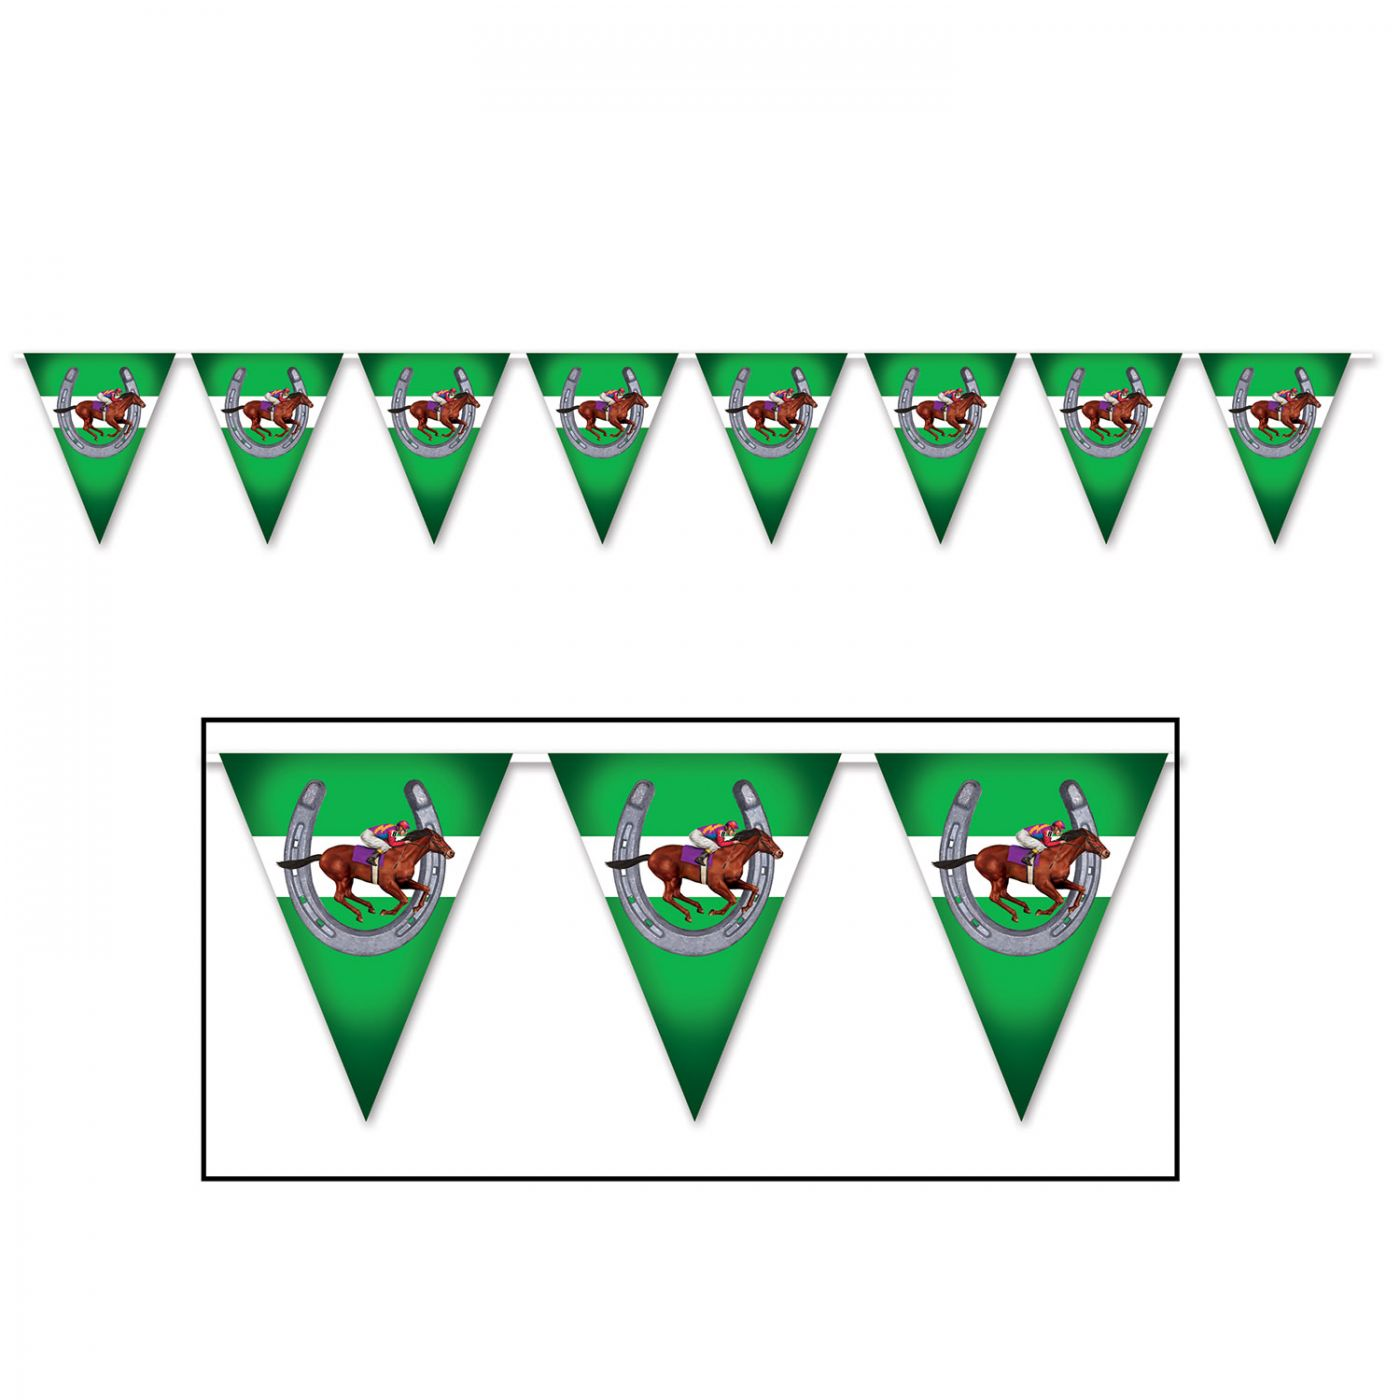 Image of Horse Racing Pennant Banner